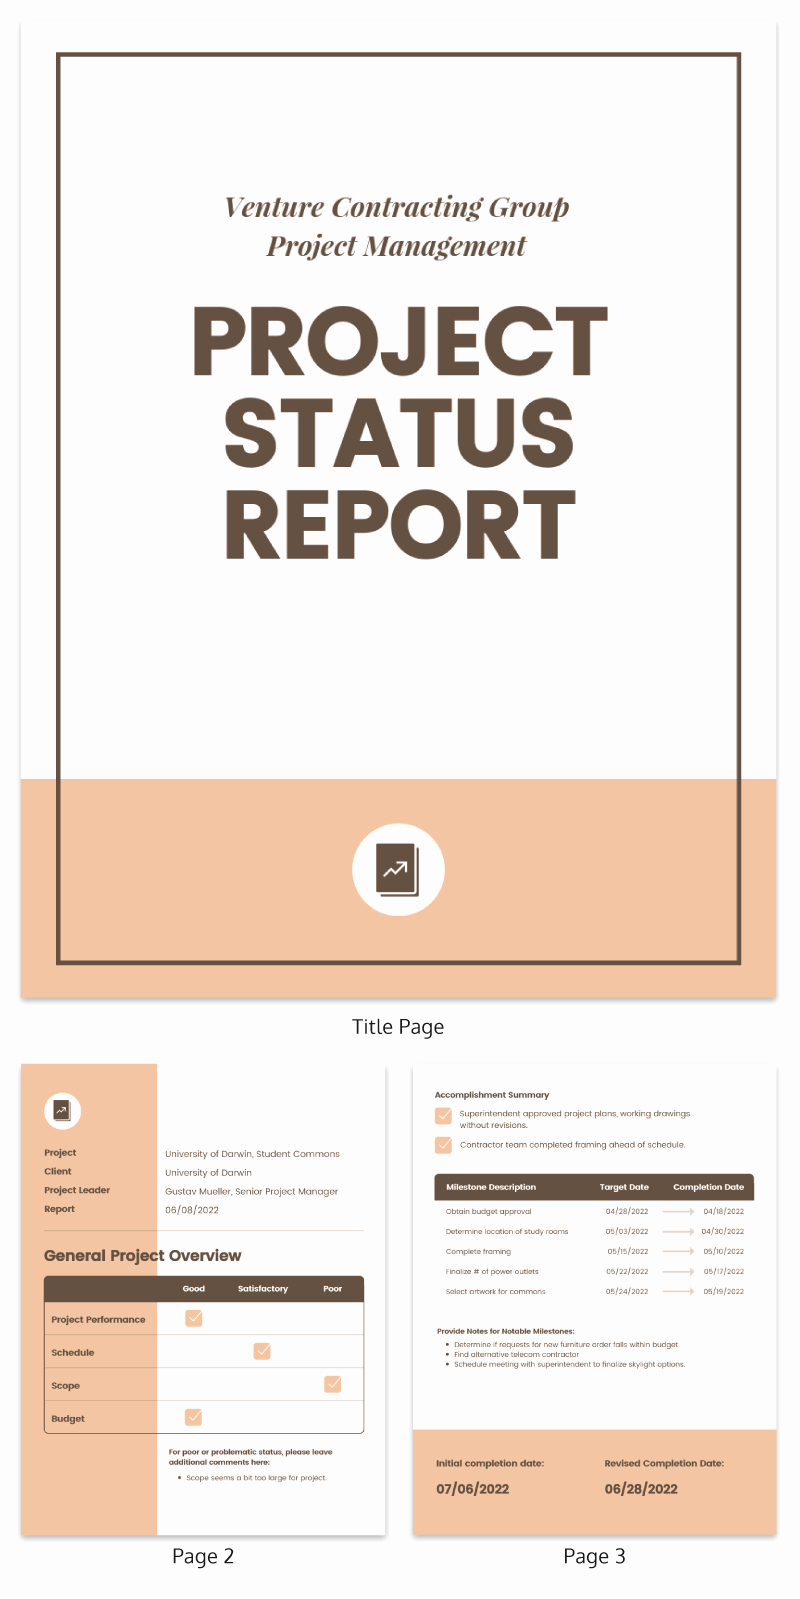 Project Progress Report Template Luxury 15 Project Plan Templates to Visualize Your Strategy